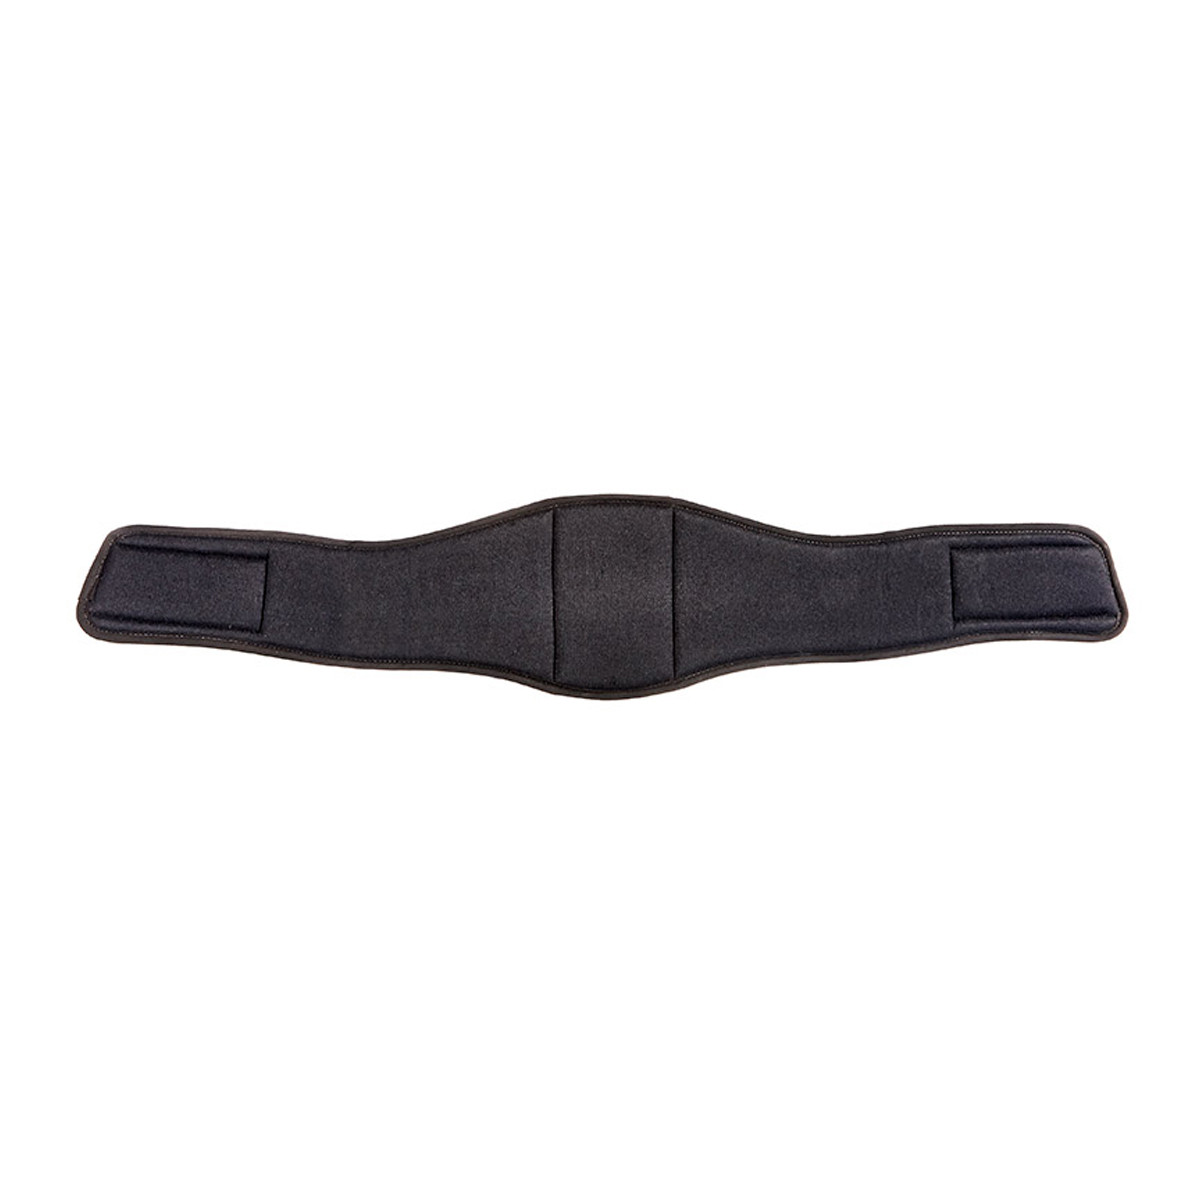 EquiFit® Essential Girth Smart Fabric Replacement Liner